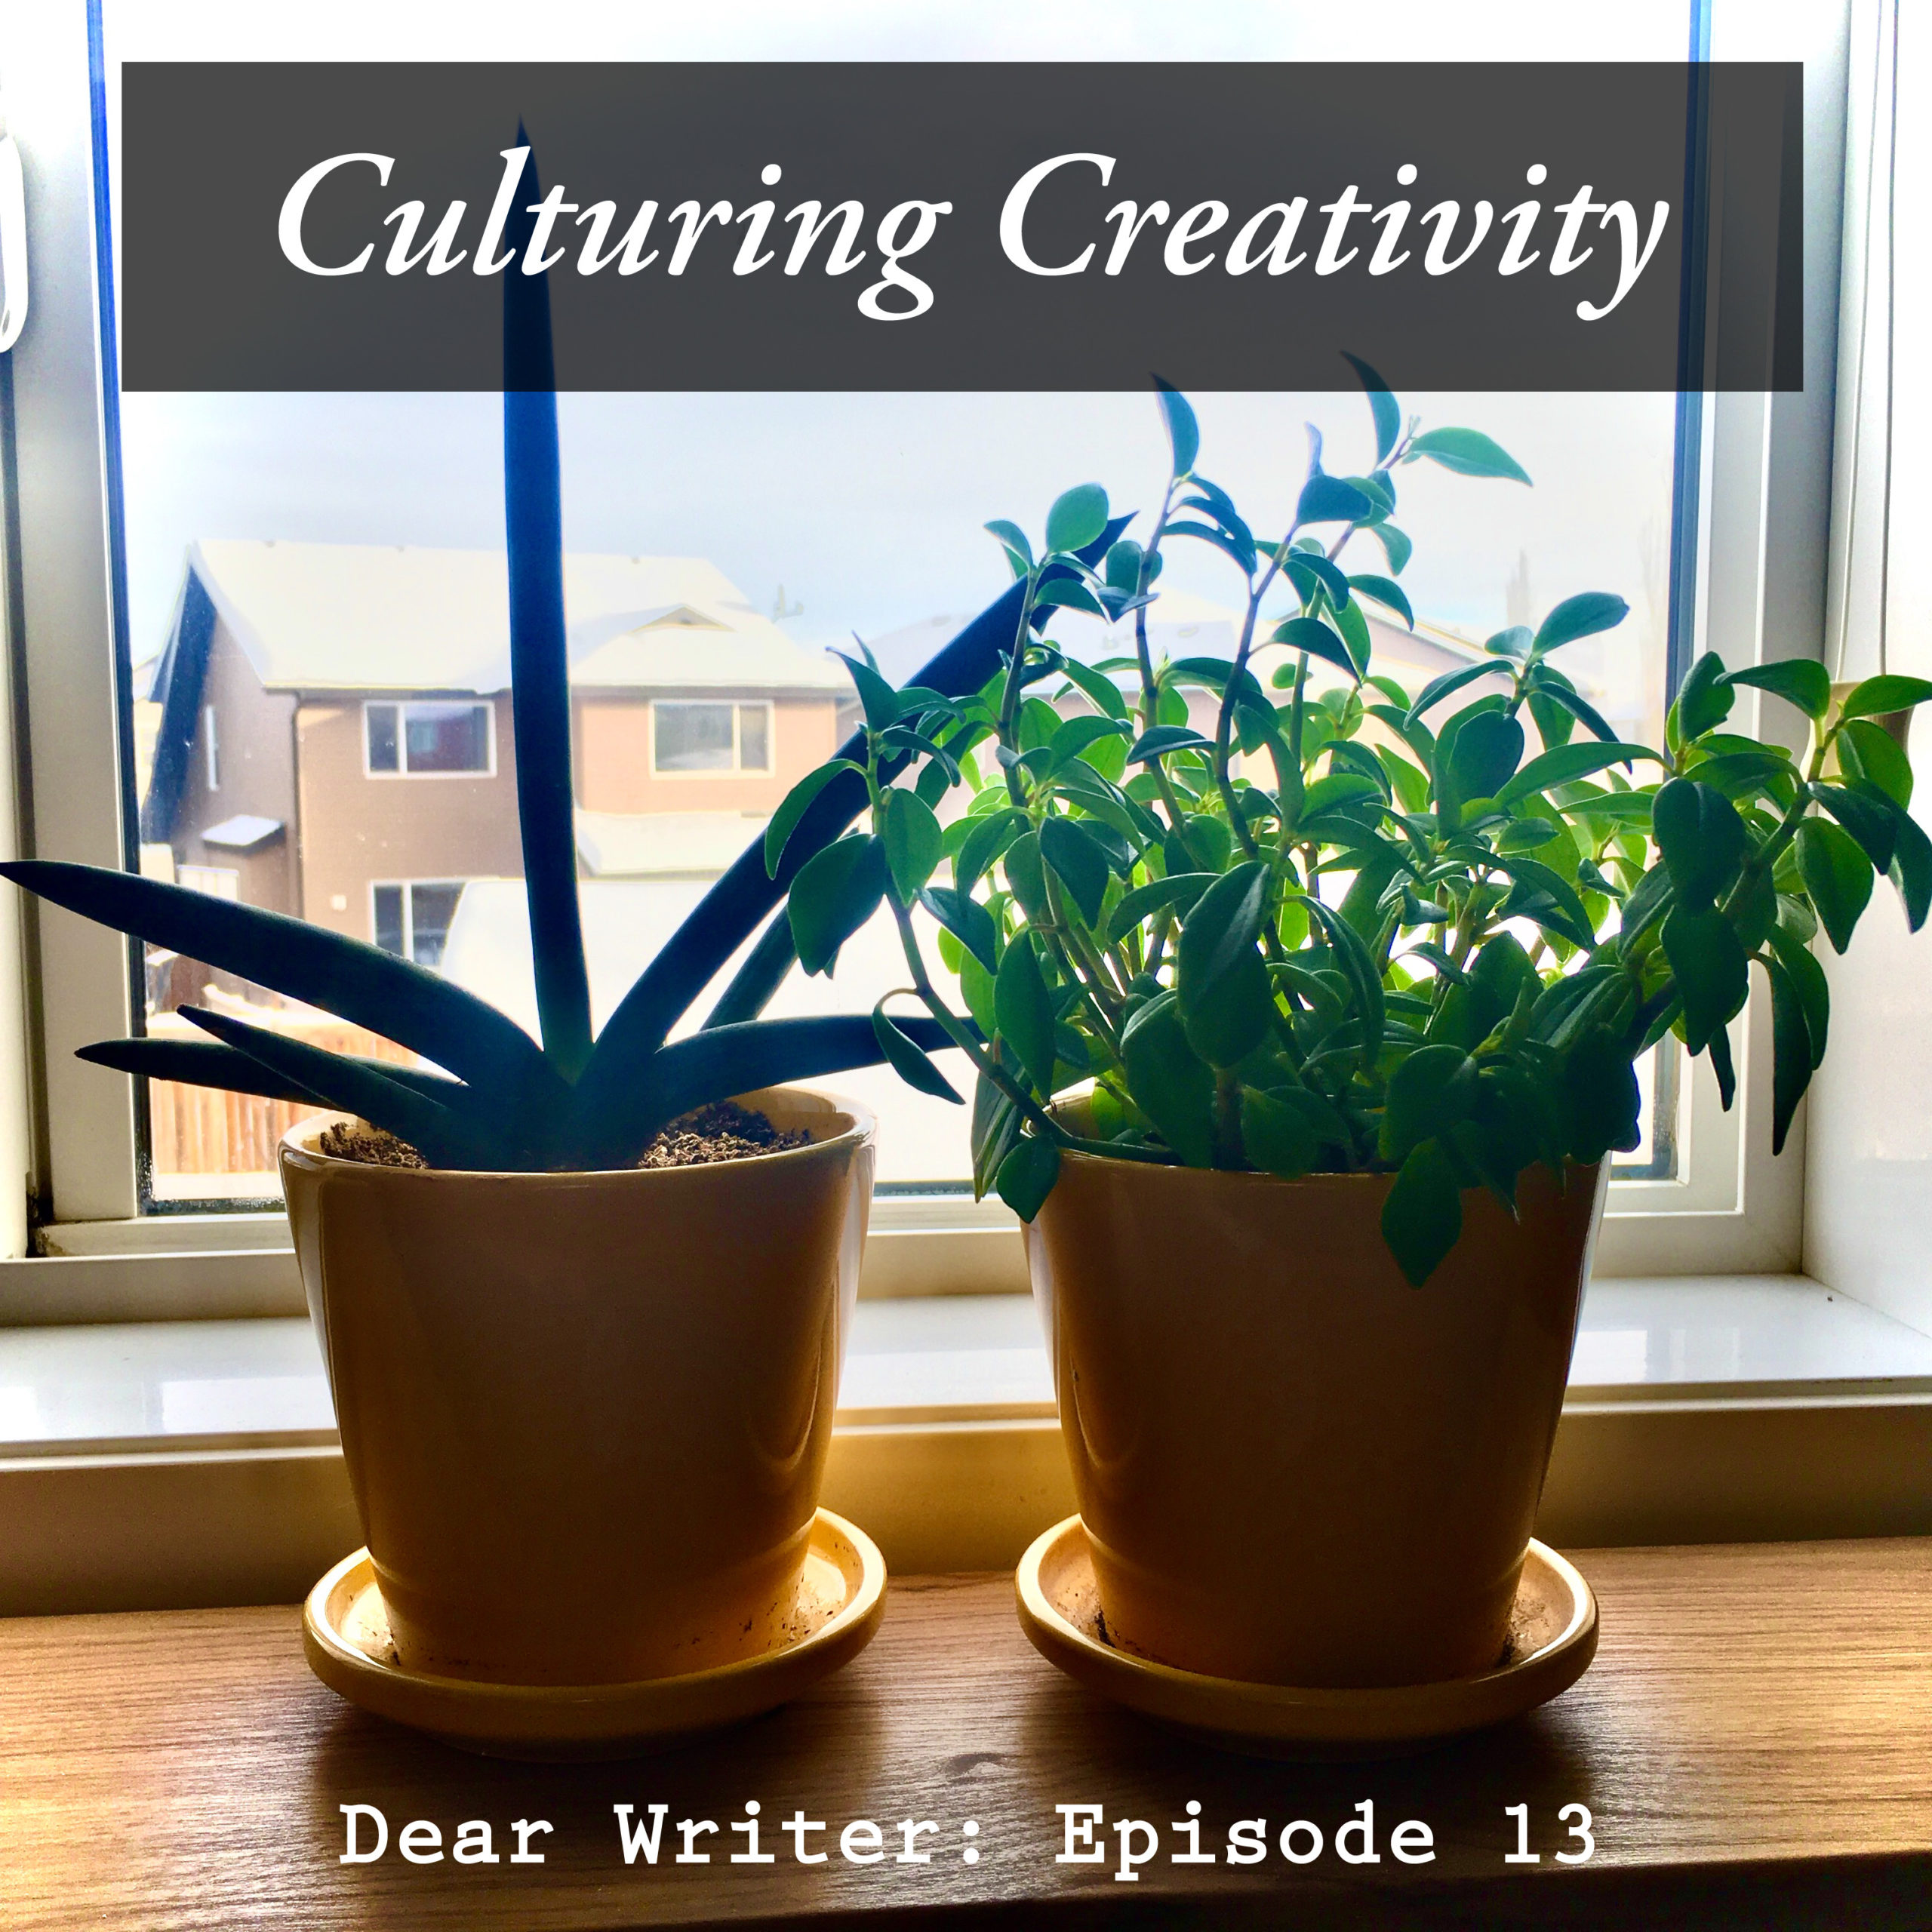 Culturing Creativity: A Day in the Life